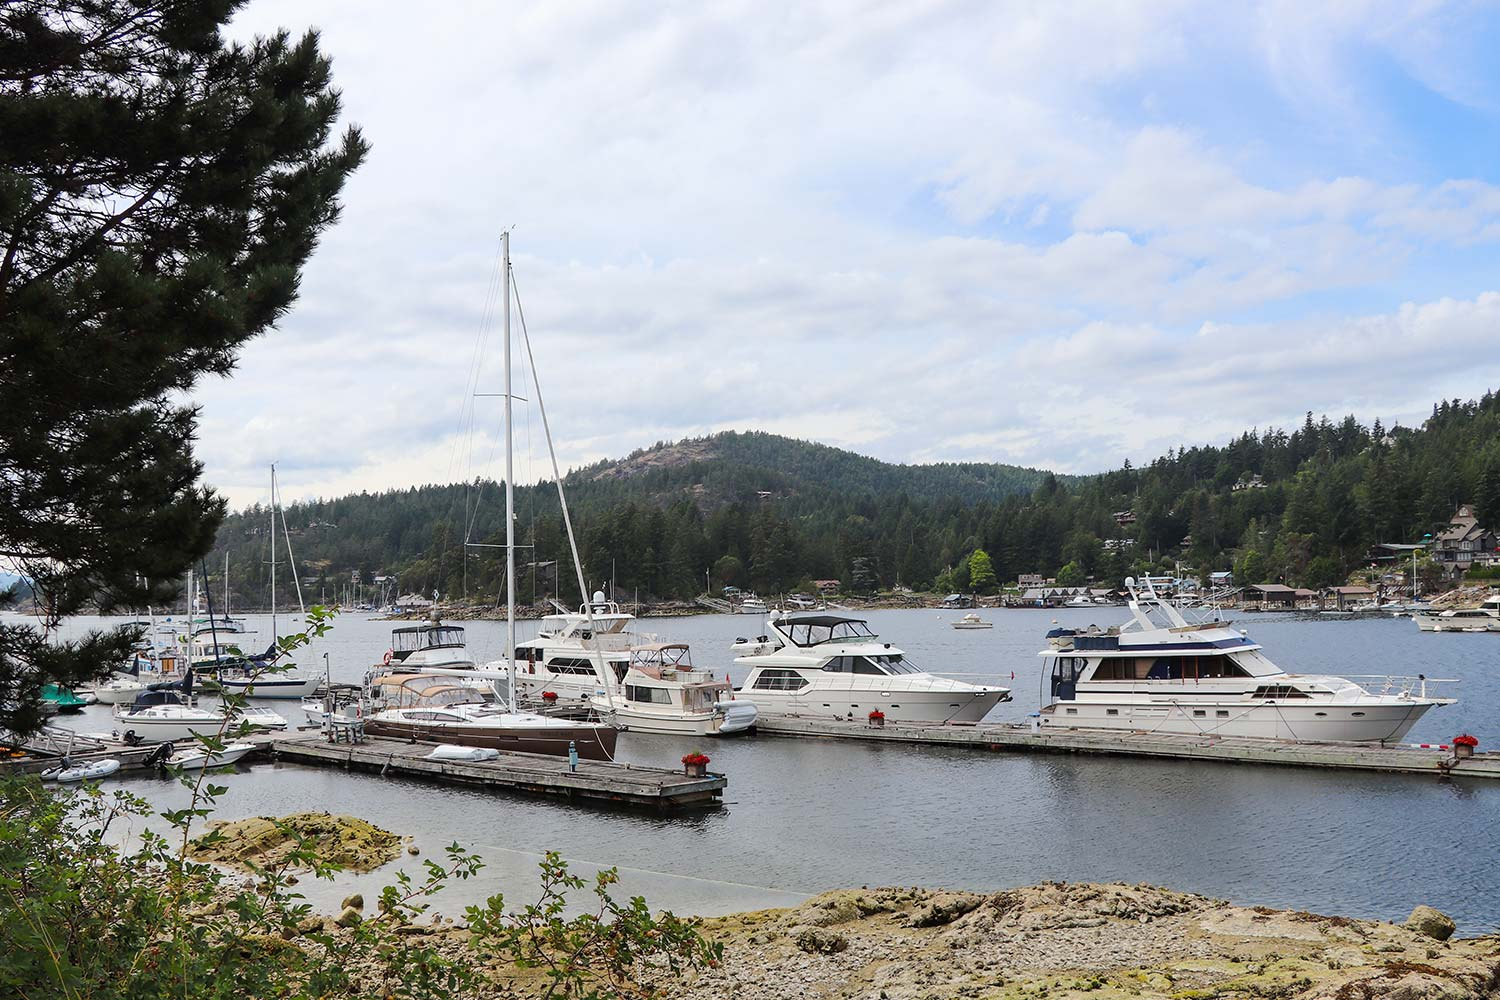 A view from the shoreline - boats moored at John Henry's marine fuel dock and yacht moorage.